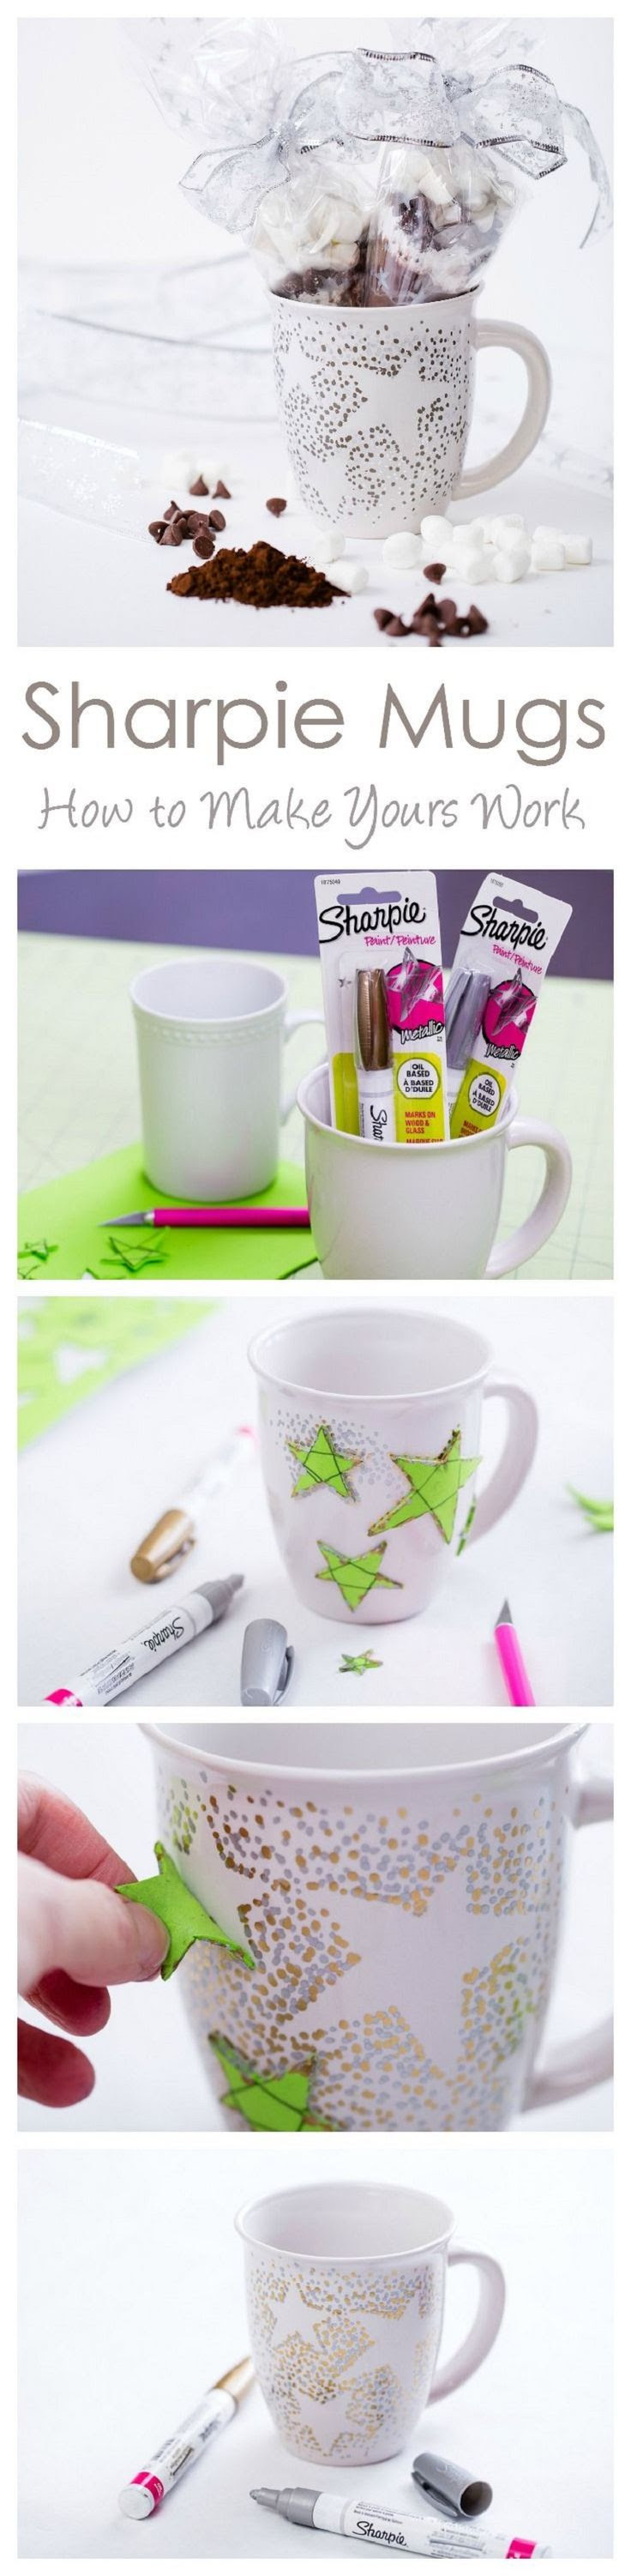 Sharpie Mug with Oil Based Sharpies - 16 Easy and Cool Sharpie Crafts You'll Love | GleamItUp